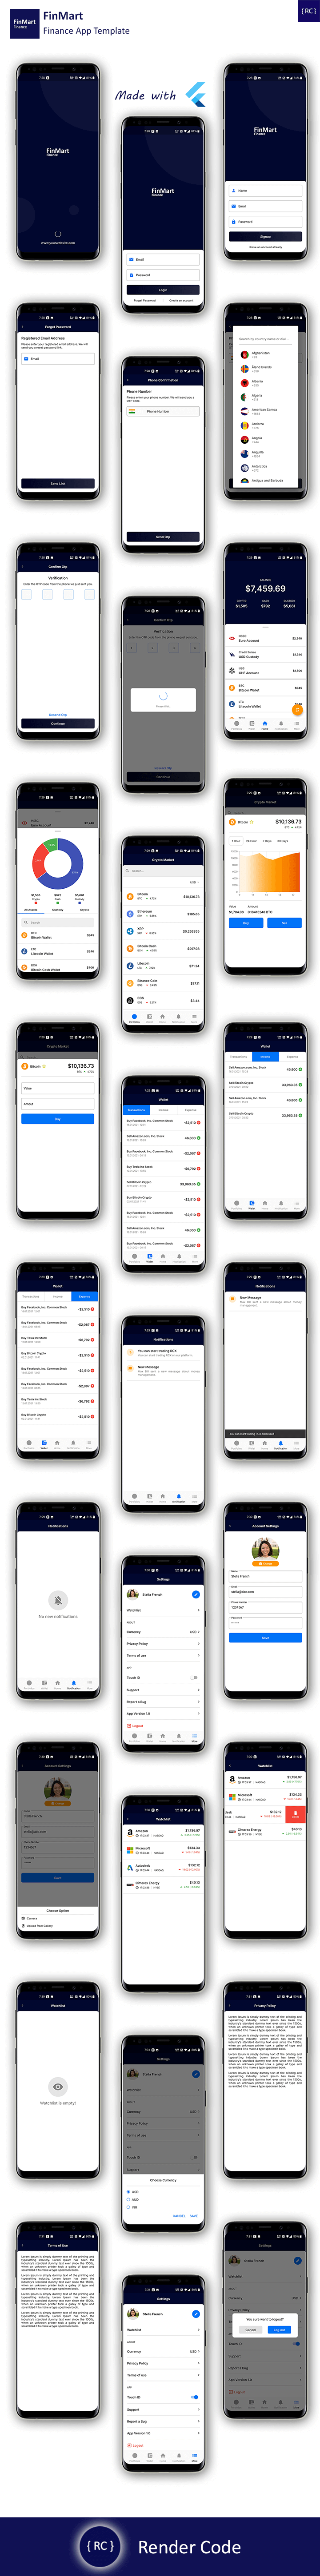 Crypto App Android + Crypto App iOS Template | Finance & Crypto App Template Flutter | FinMart - 4